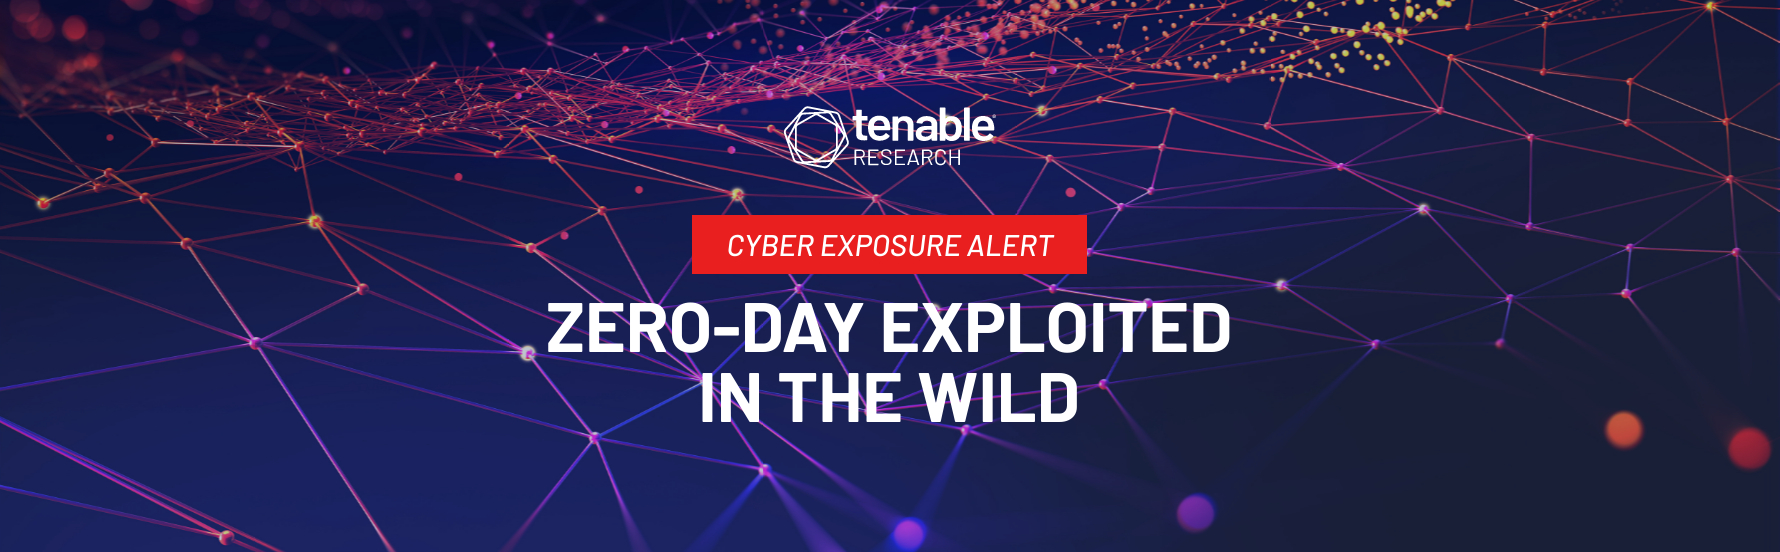 CVE-2021-22893: Zero-Day Vulnerability in Pulse Connect Secure Exploited in the Wild